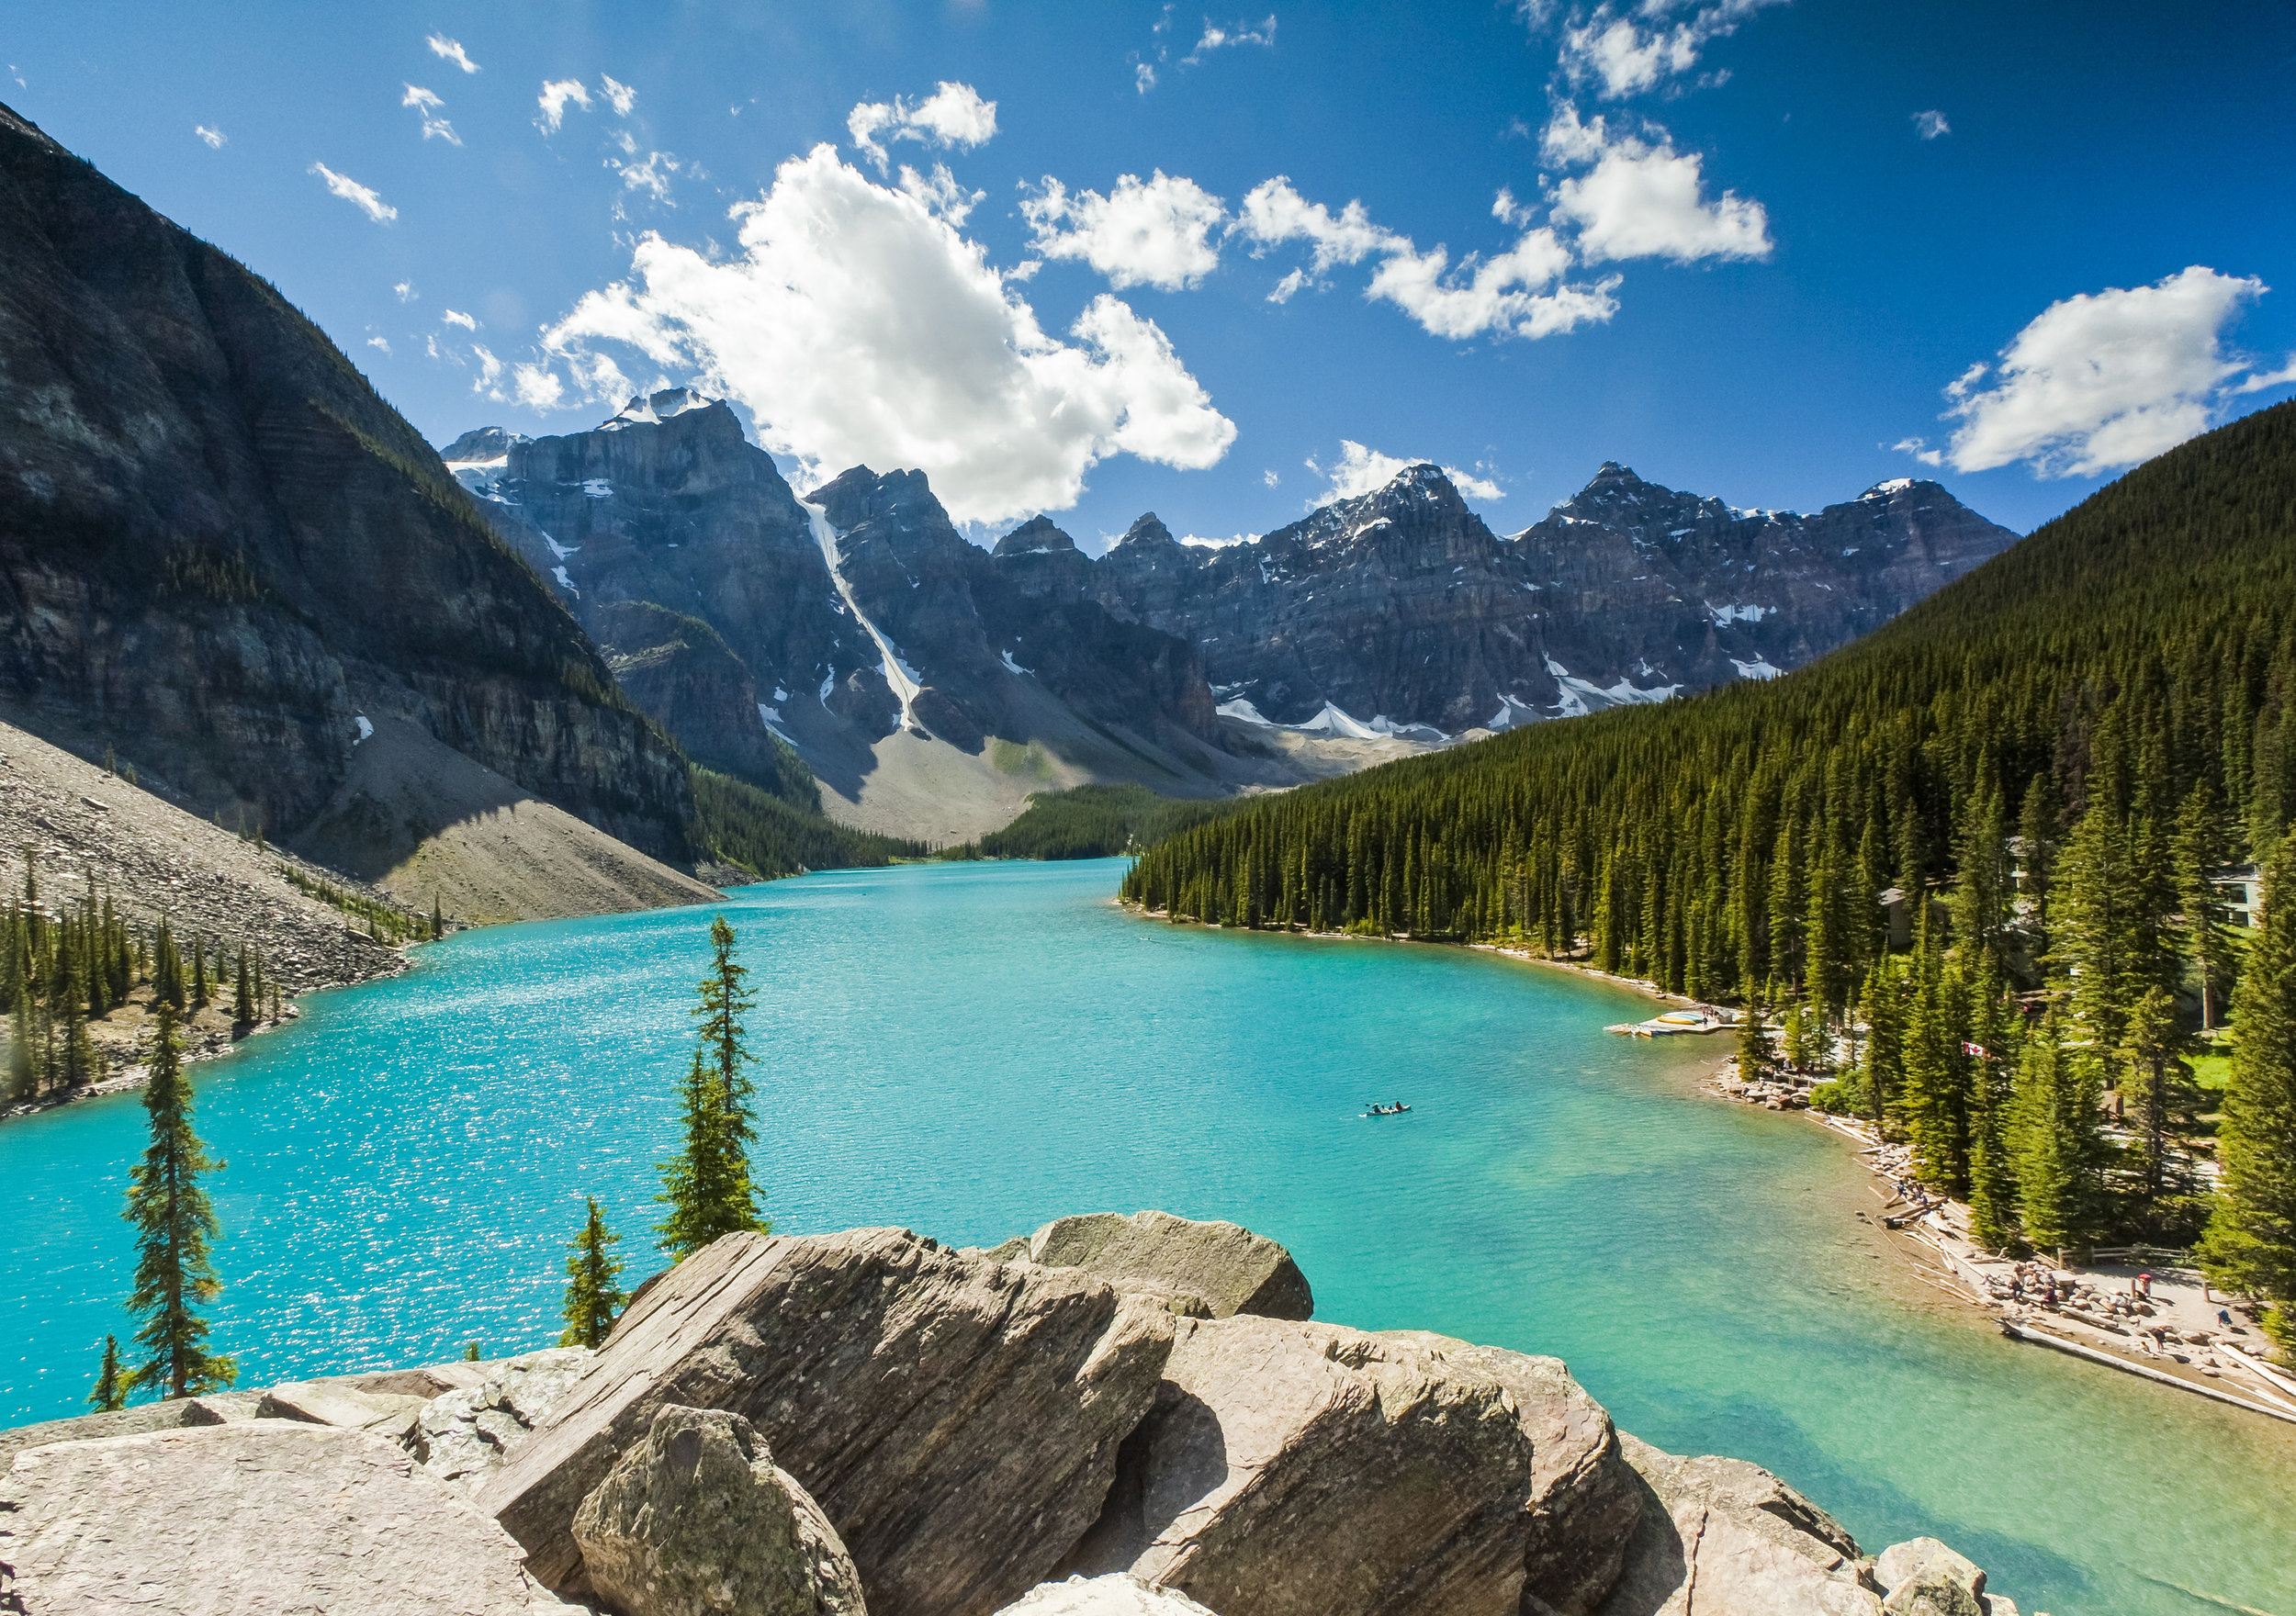 Guided hiking tours in the Rockies